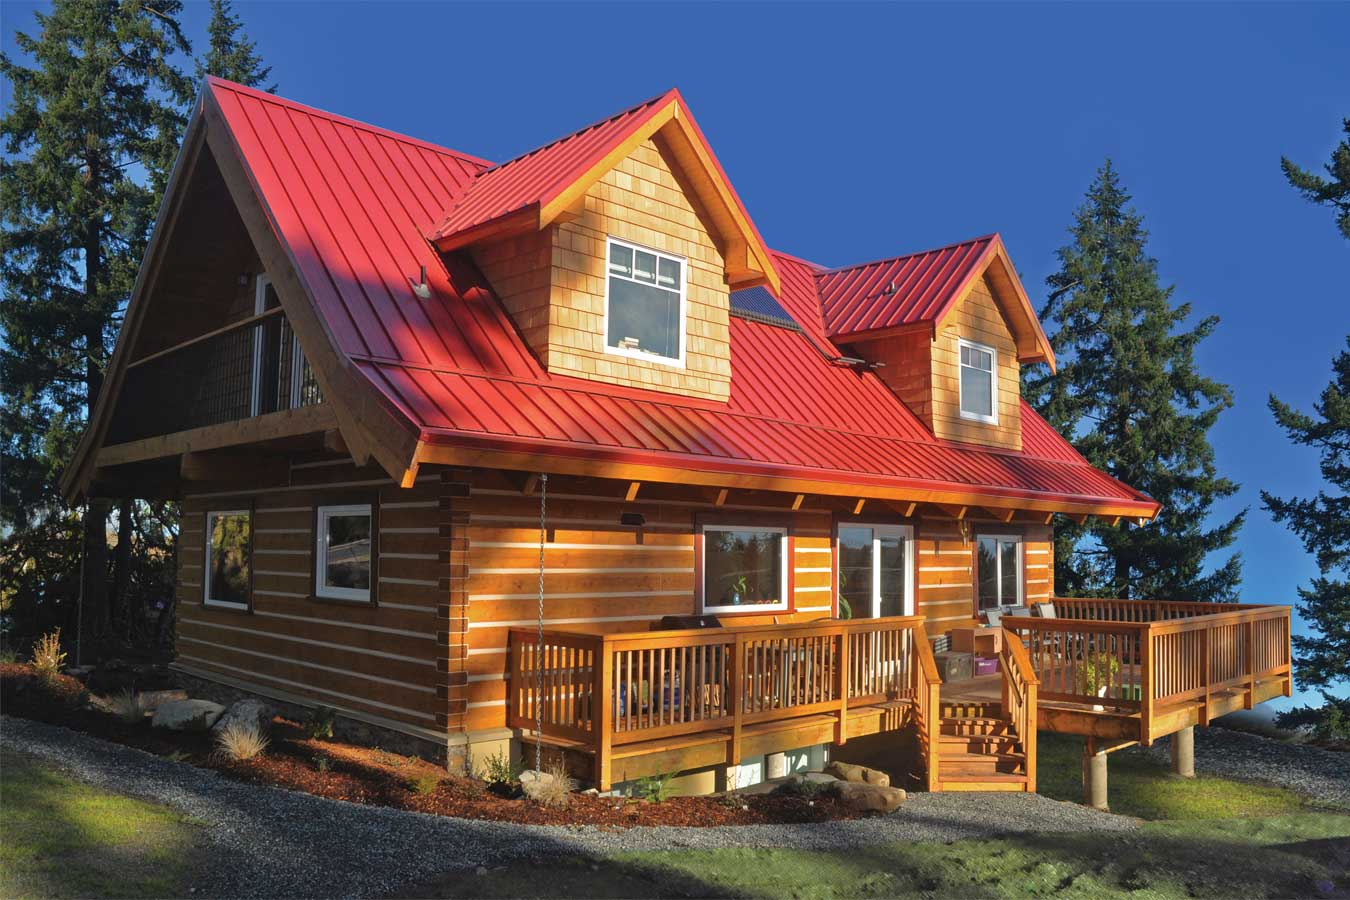 Vancouver Island Model Log Home Near Victoria